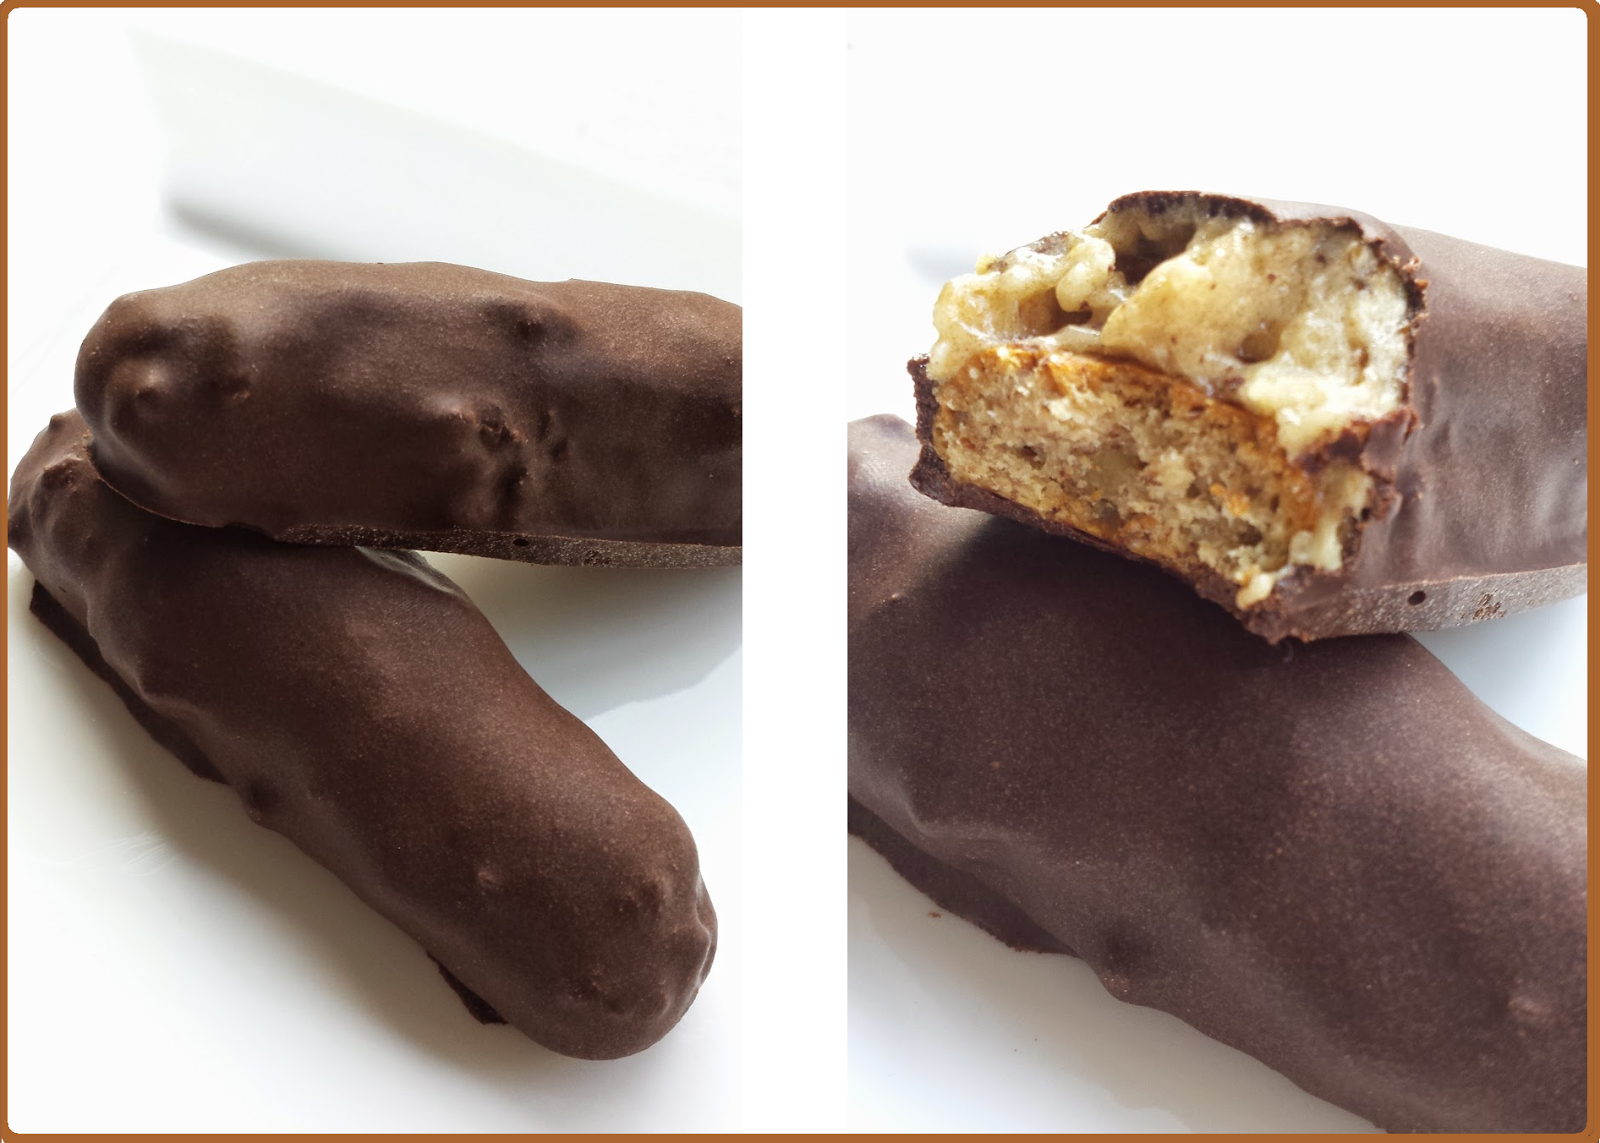 Healthilicious Twix Bars - Guiltfree Twix, only the right one